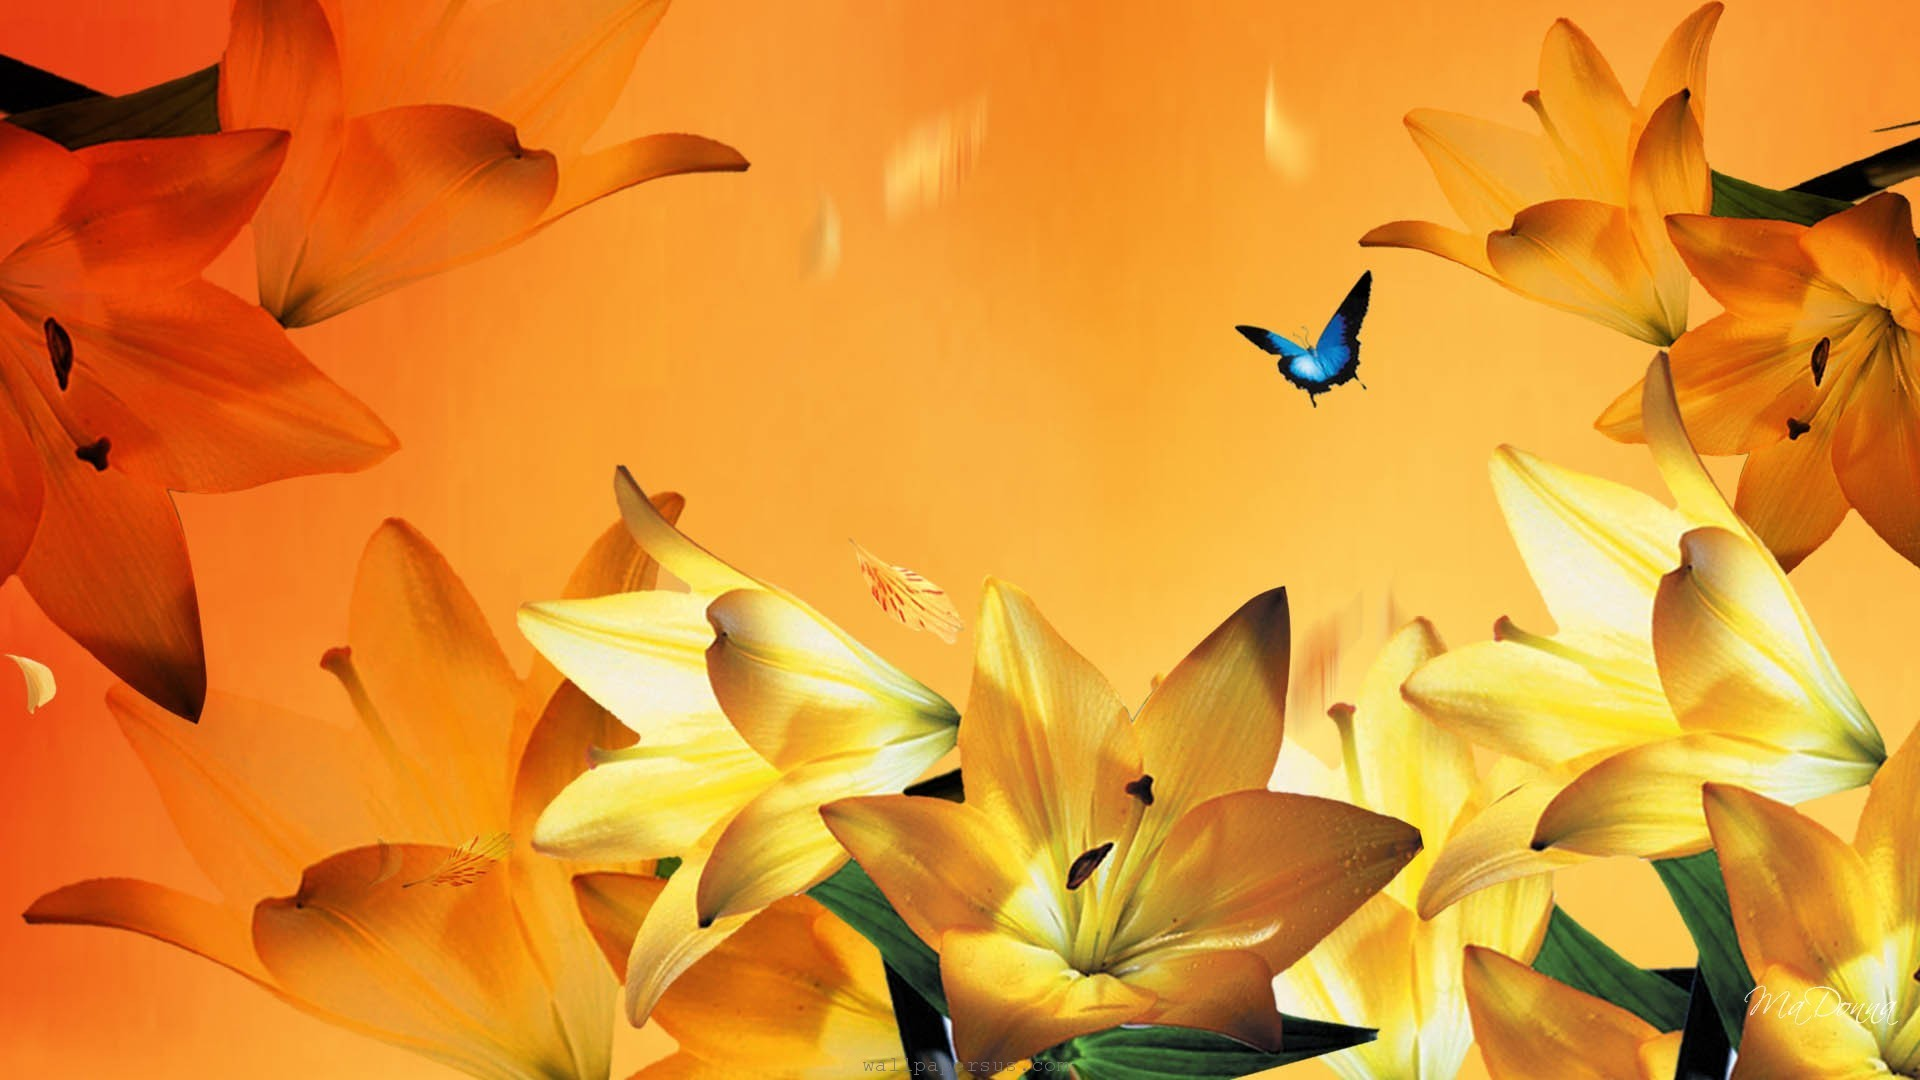 Floral, Orange, Petals, Summer, Yellow, Lilies, Flowers, Lily, Blue Wallpaper